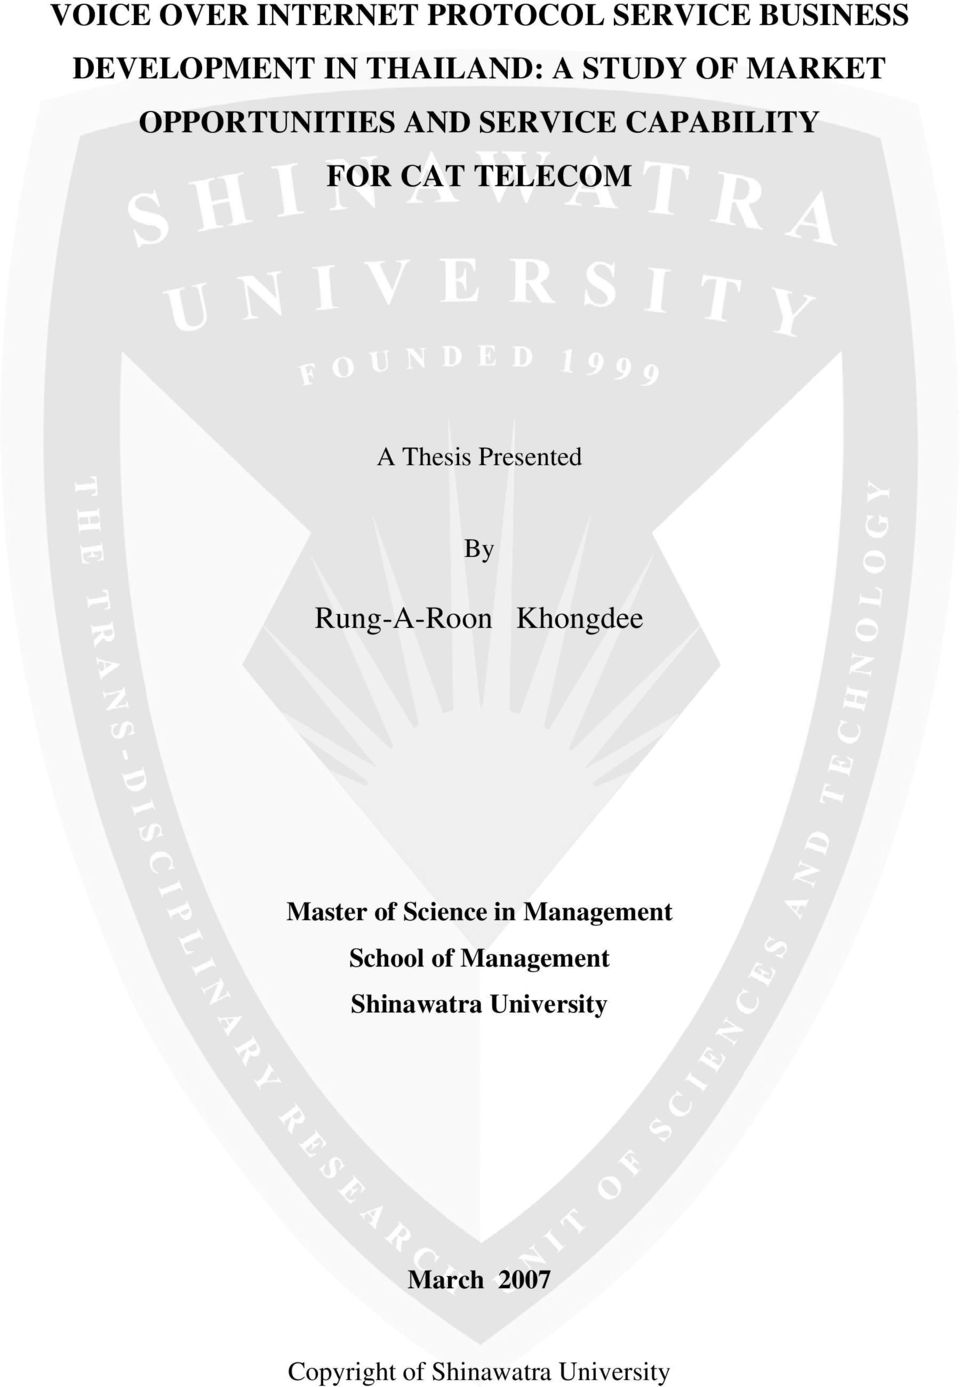 Thesis Presented By Rung-A-Roon Khongdee Master of Science in Management